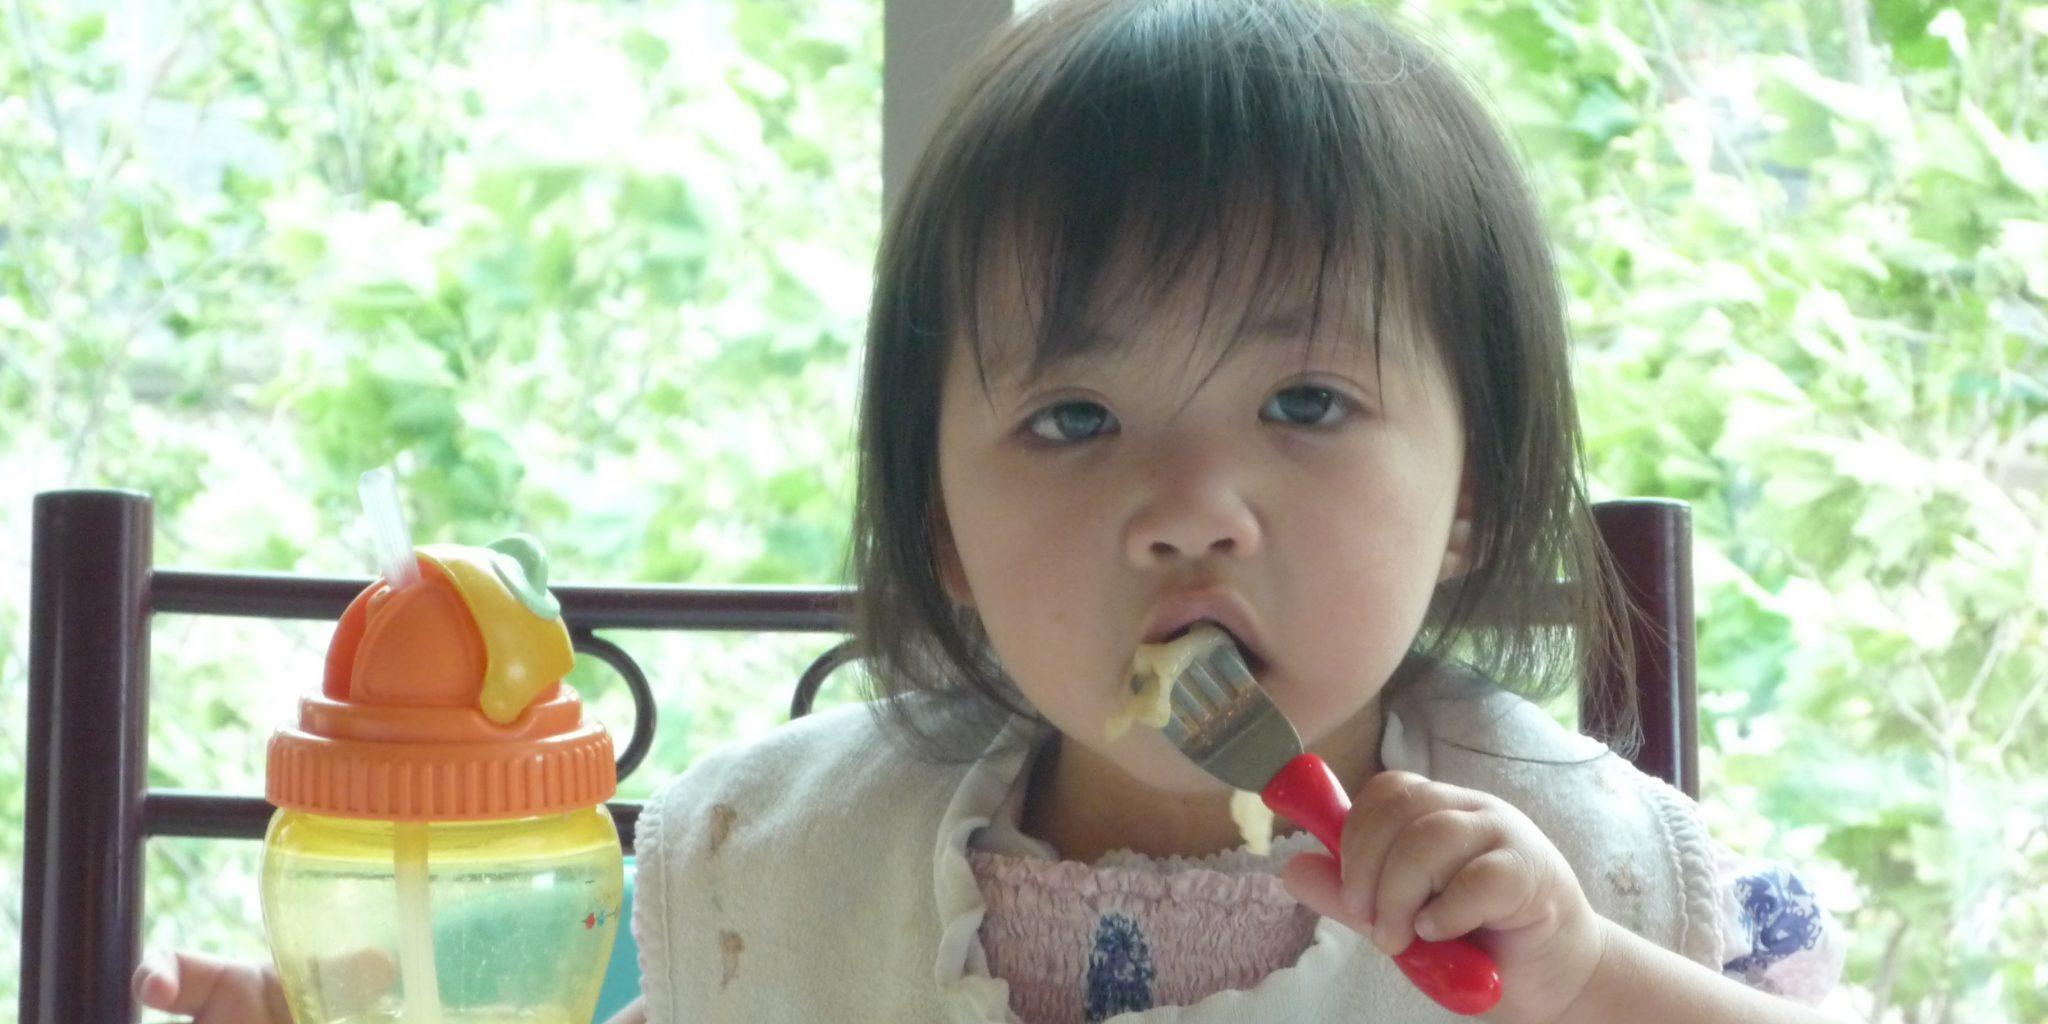 how-much-should-my-toddler-eat-parenting-matters-michele-meehan